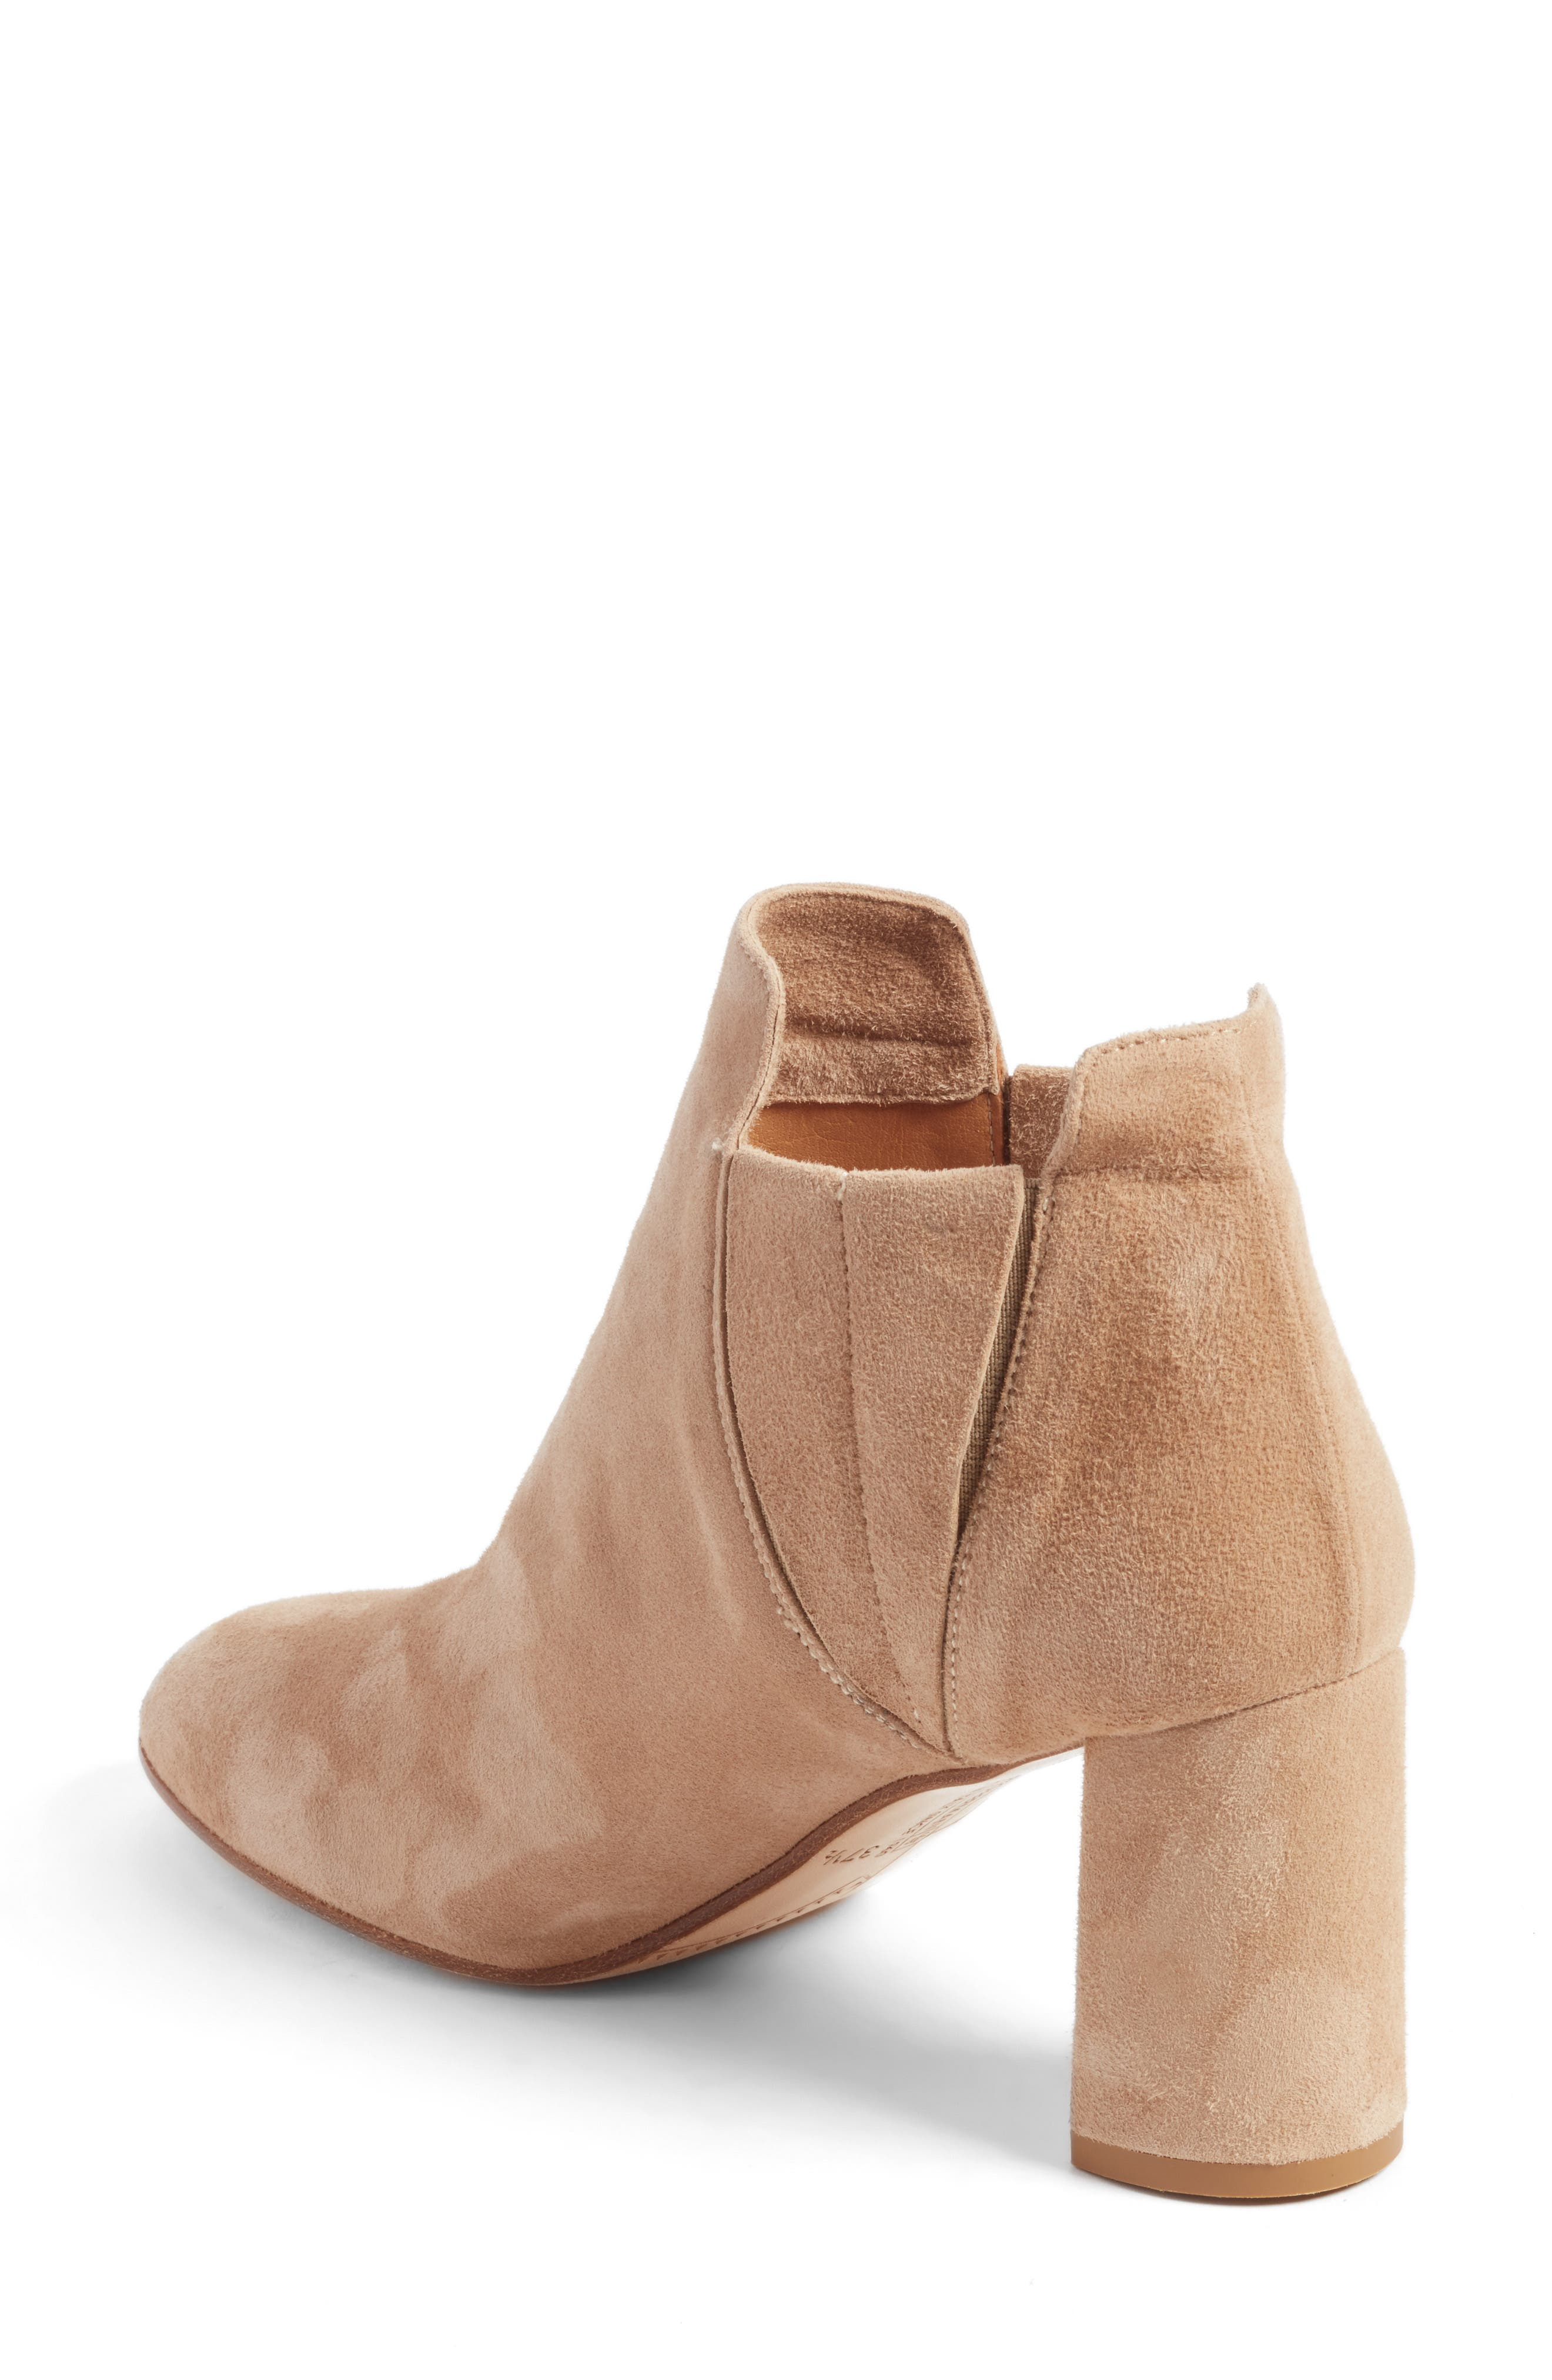 Nadina Chelsea Bootie,                             Alternate thumbnail 2, color,                             Travertine